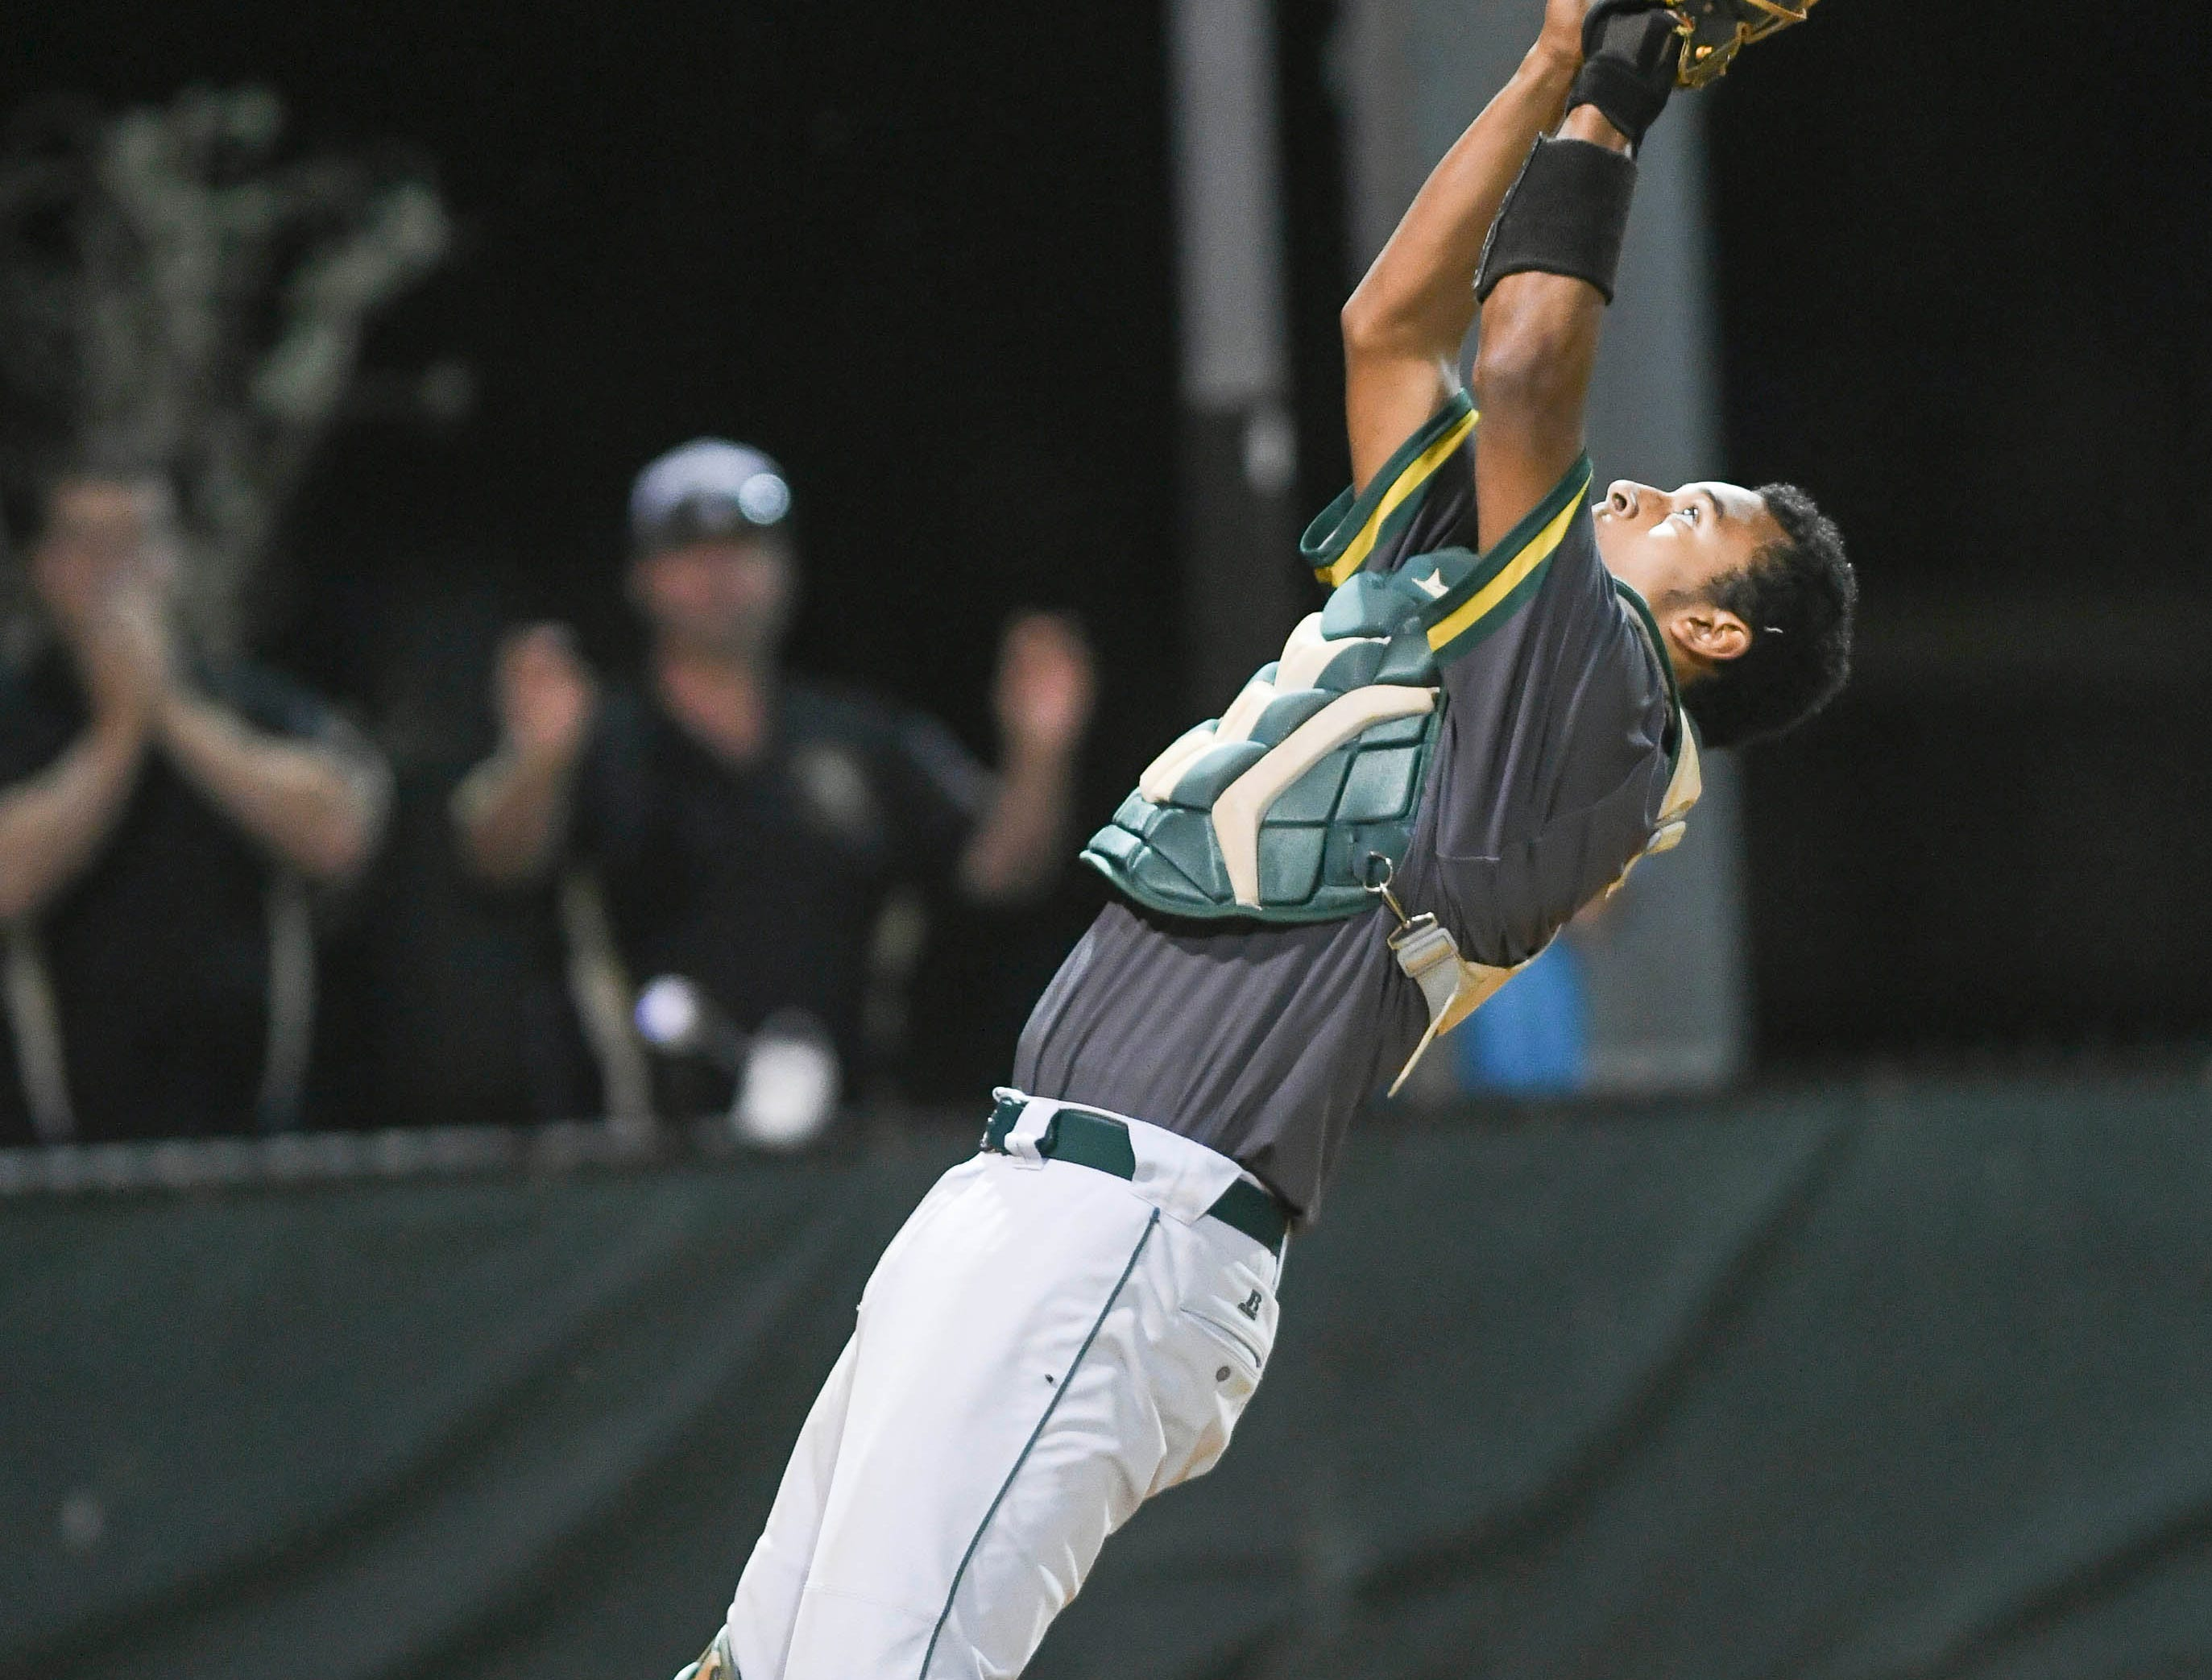 Melbourne Central Catholic catcher Kevin Espiritusanto catches the final out to preserve the 1-0 victory in Wednesday's game against Melbourne.